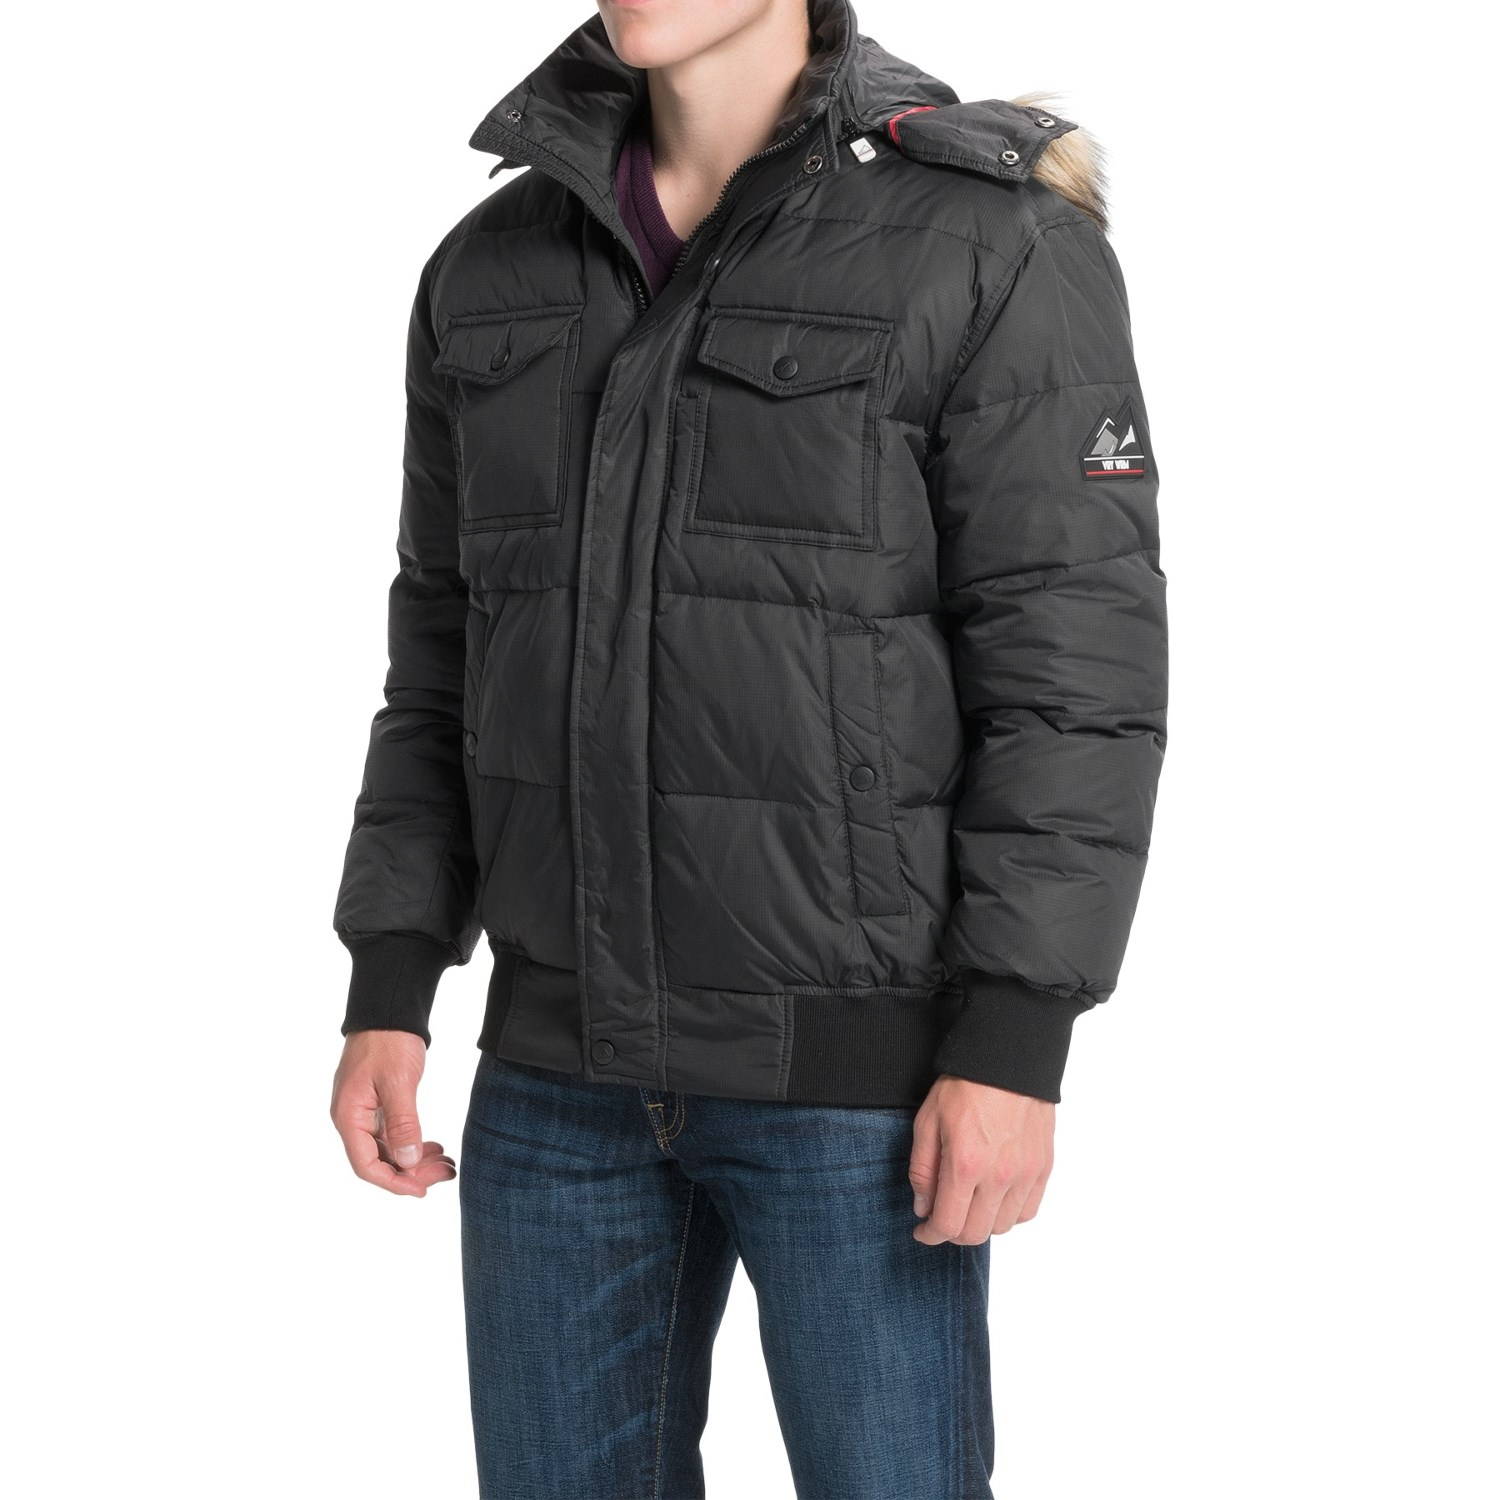 VRY WRM Lodge Down Bomber Jacket (For Men) - Save 82%